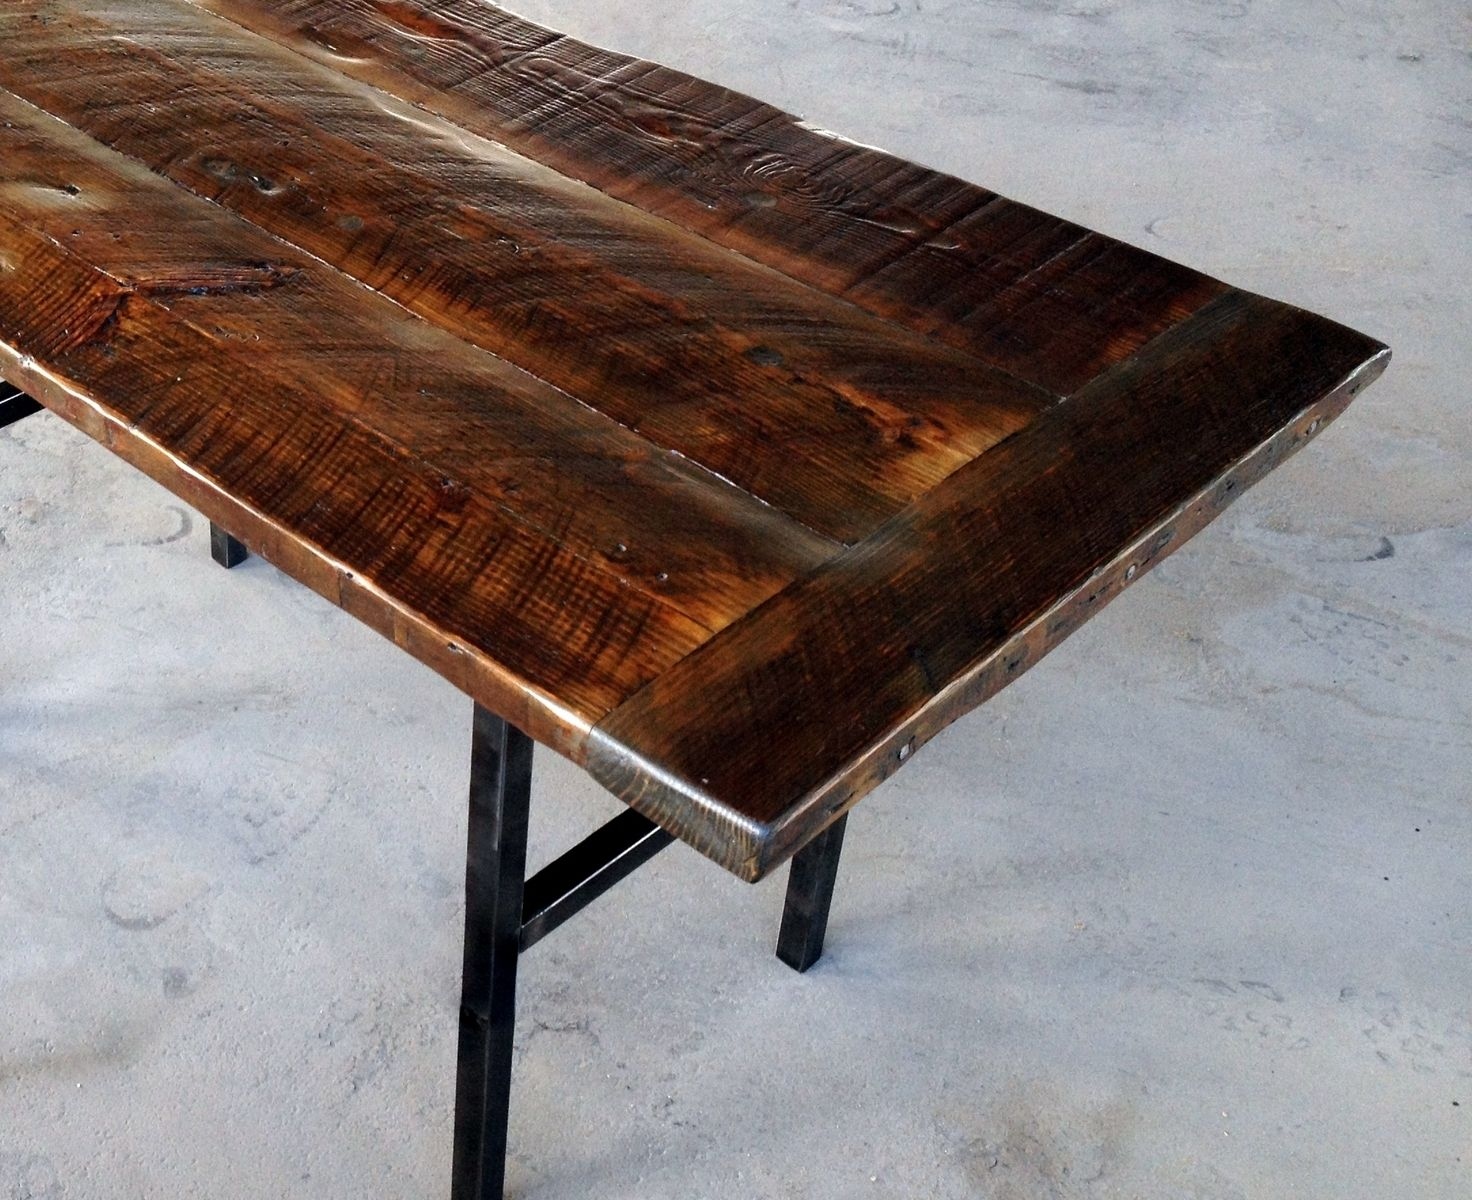 Hand crafted reclaimed wood kitchen table with steel legs for Reclaimed wood table designs